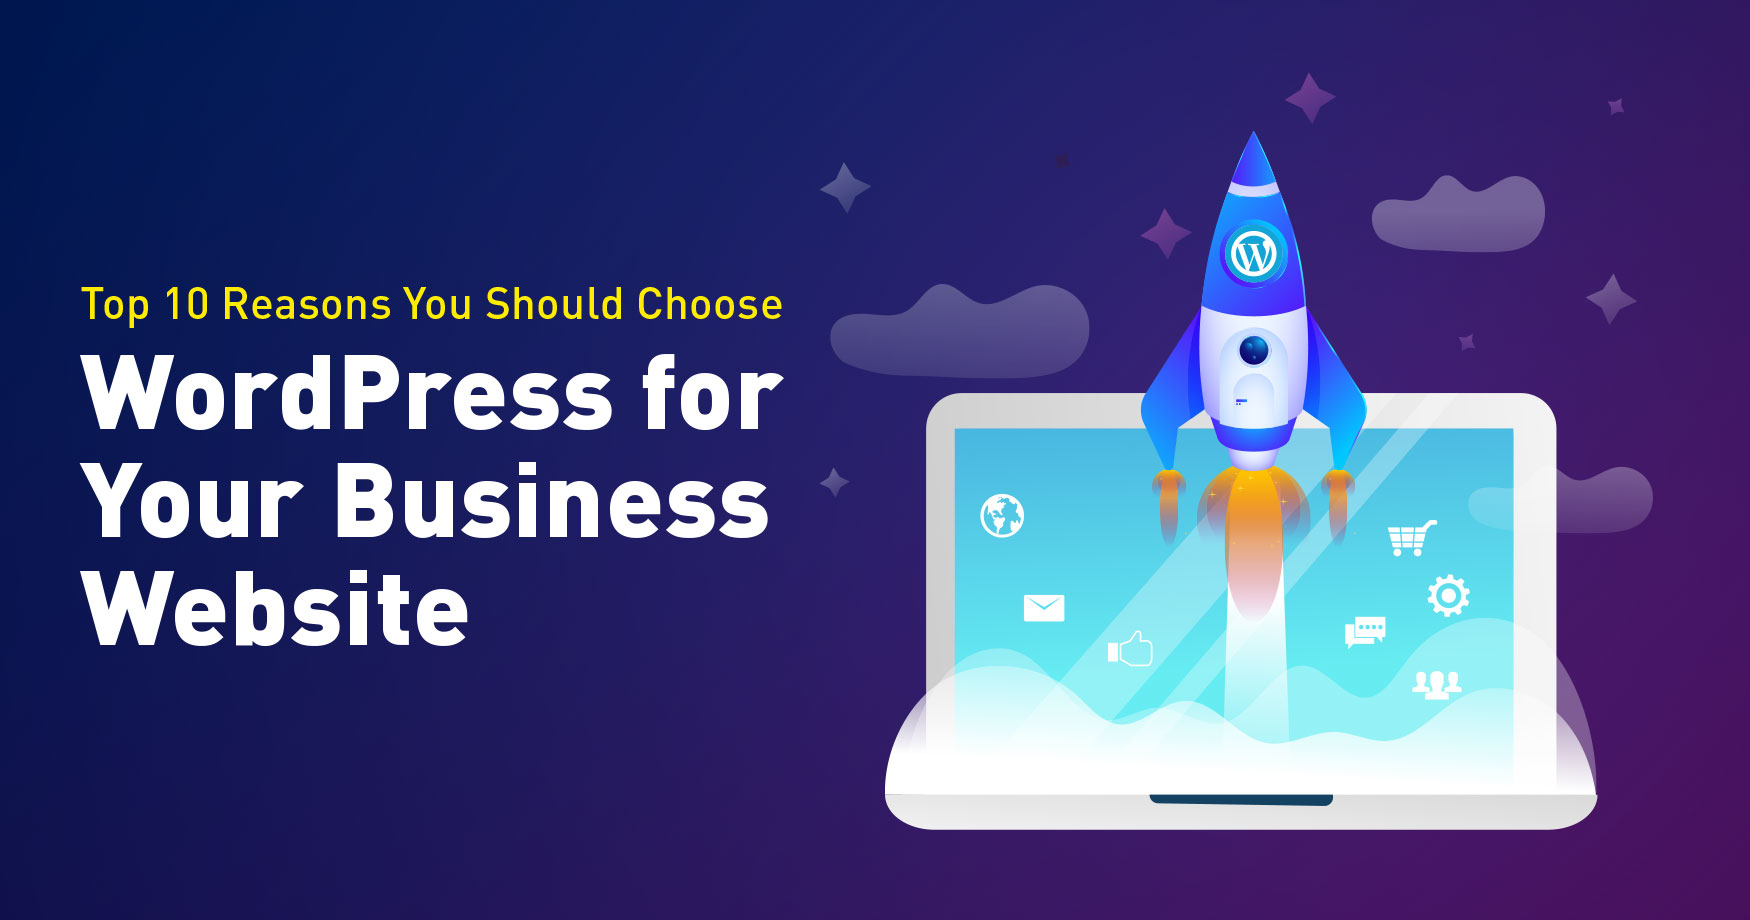 Top 10 Reasons You Should Choose WordPress for Your Business Website